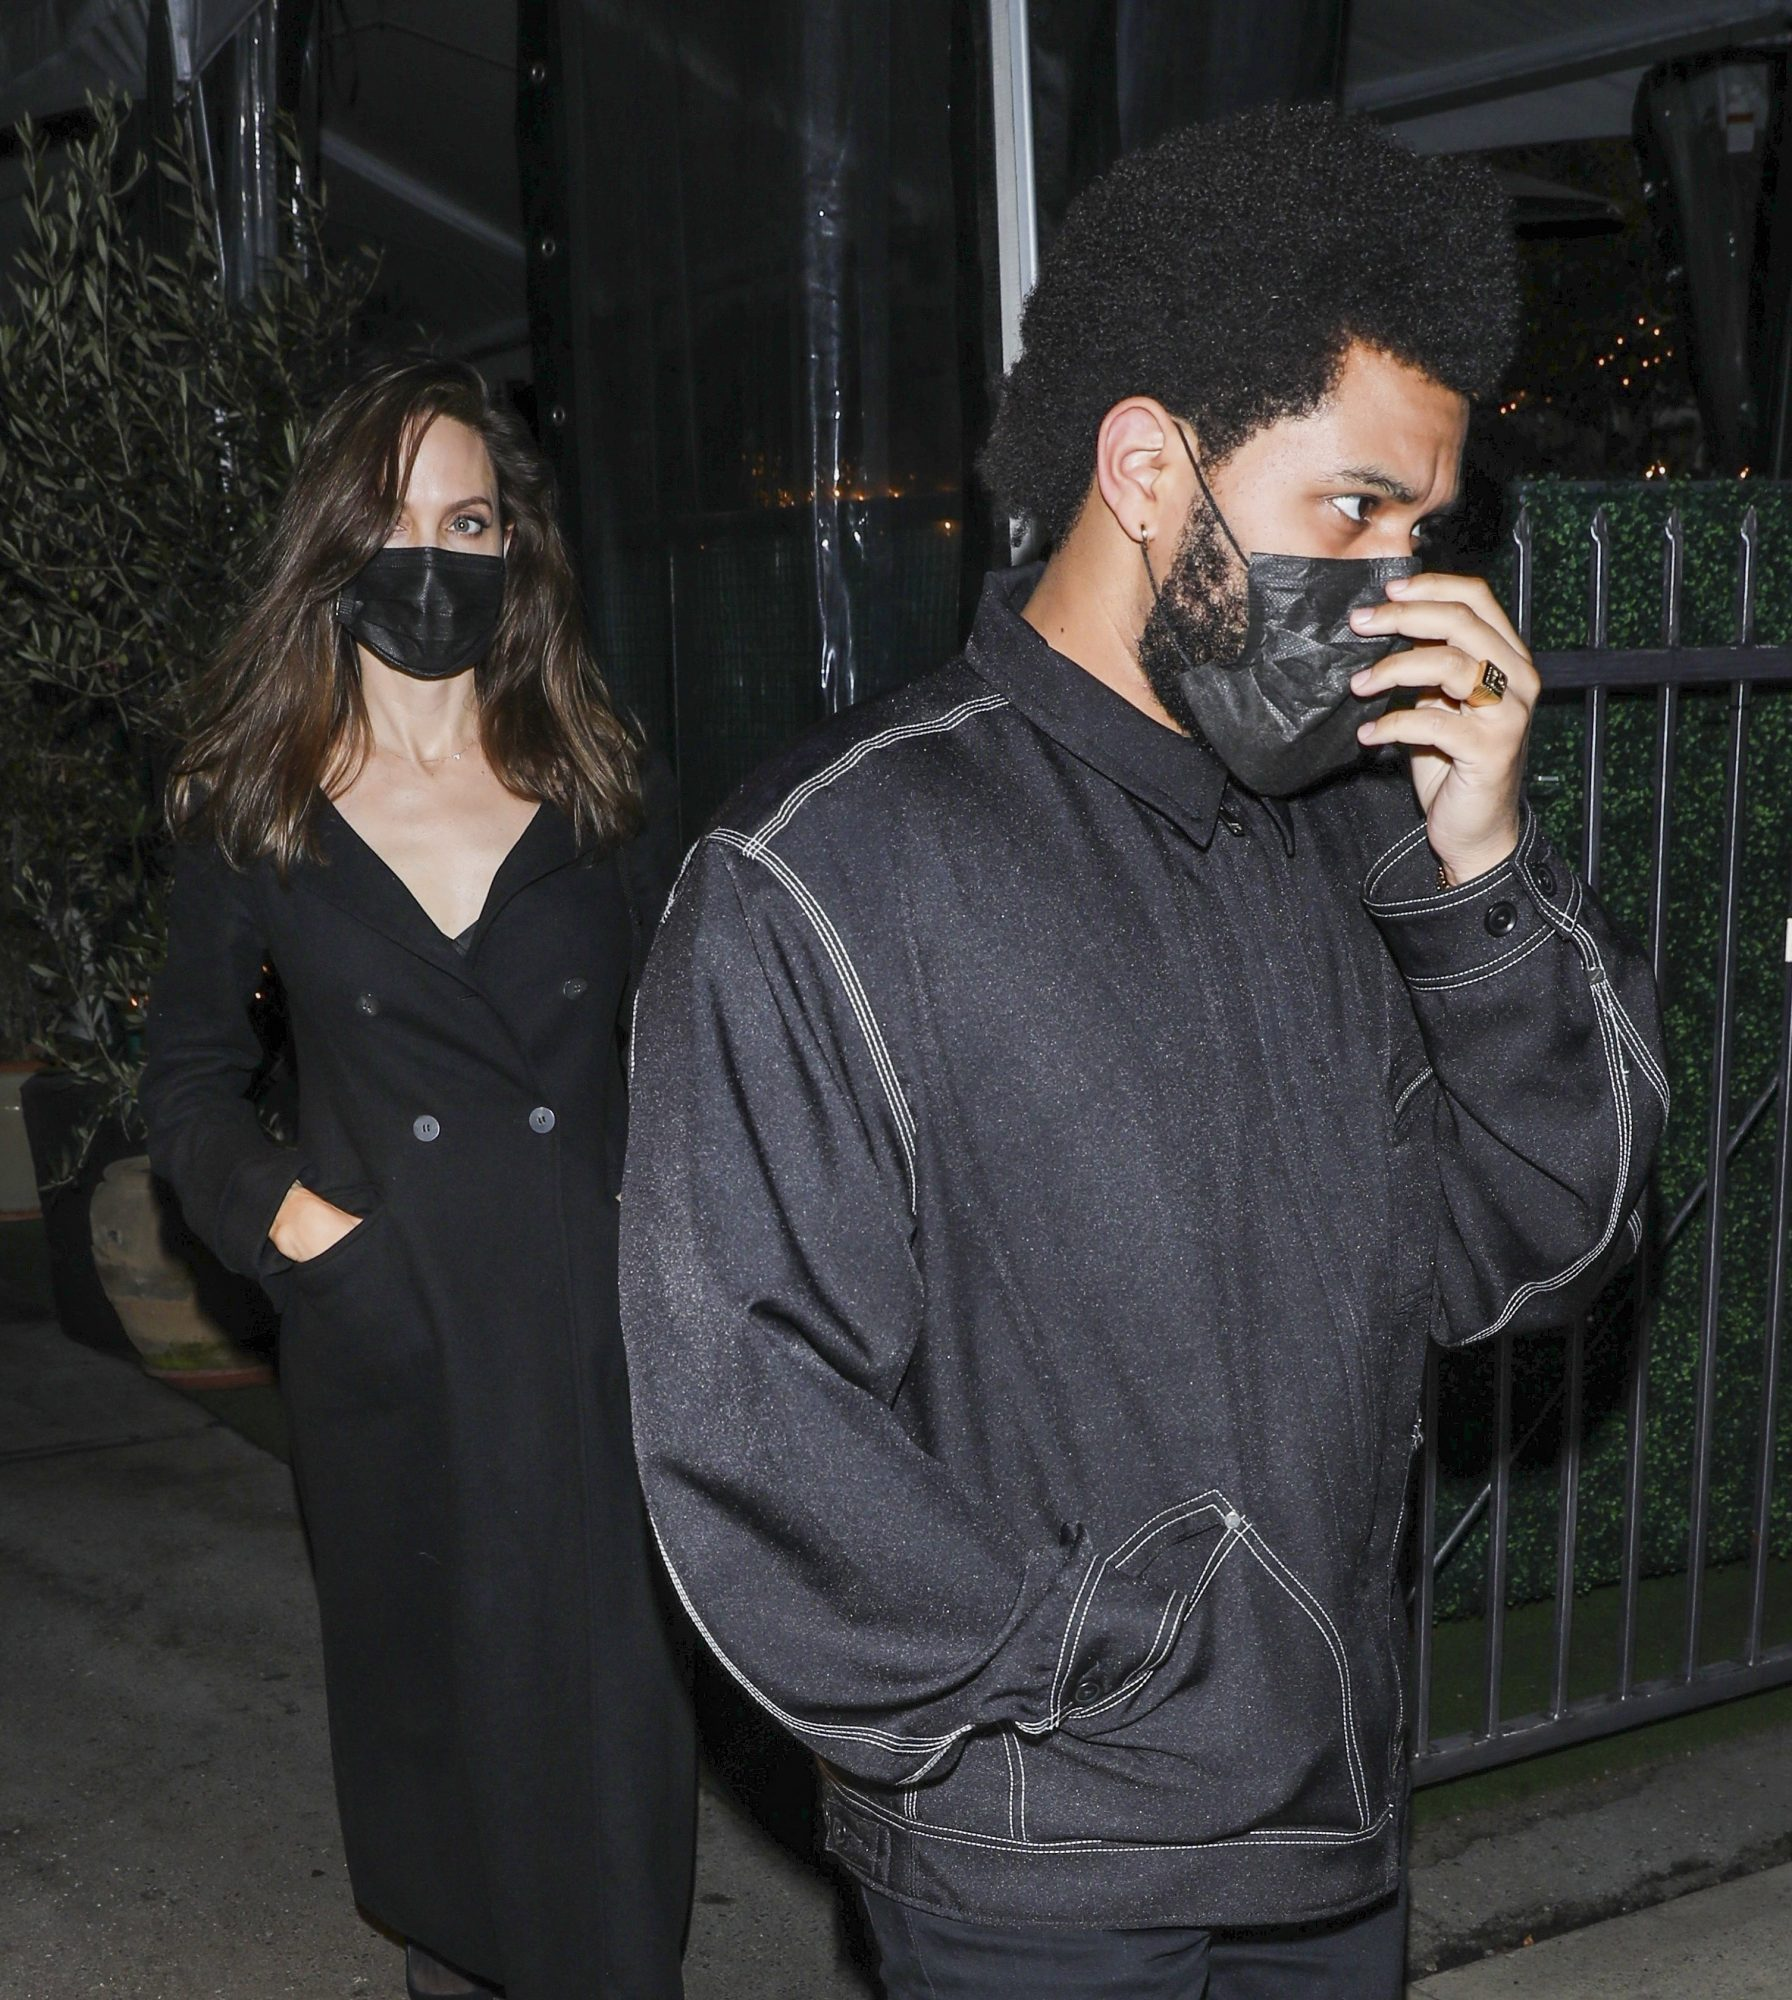 Angelina Jolie and The Weeknd Enjoy Dinner at Romantic LA Restaurant